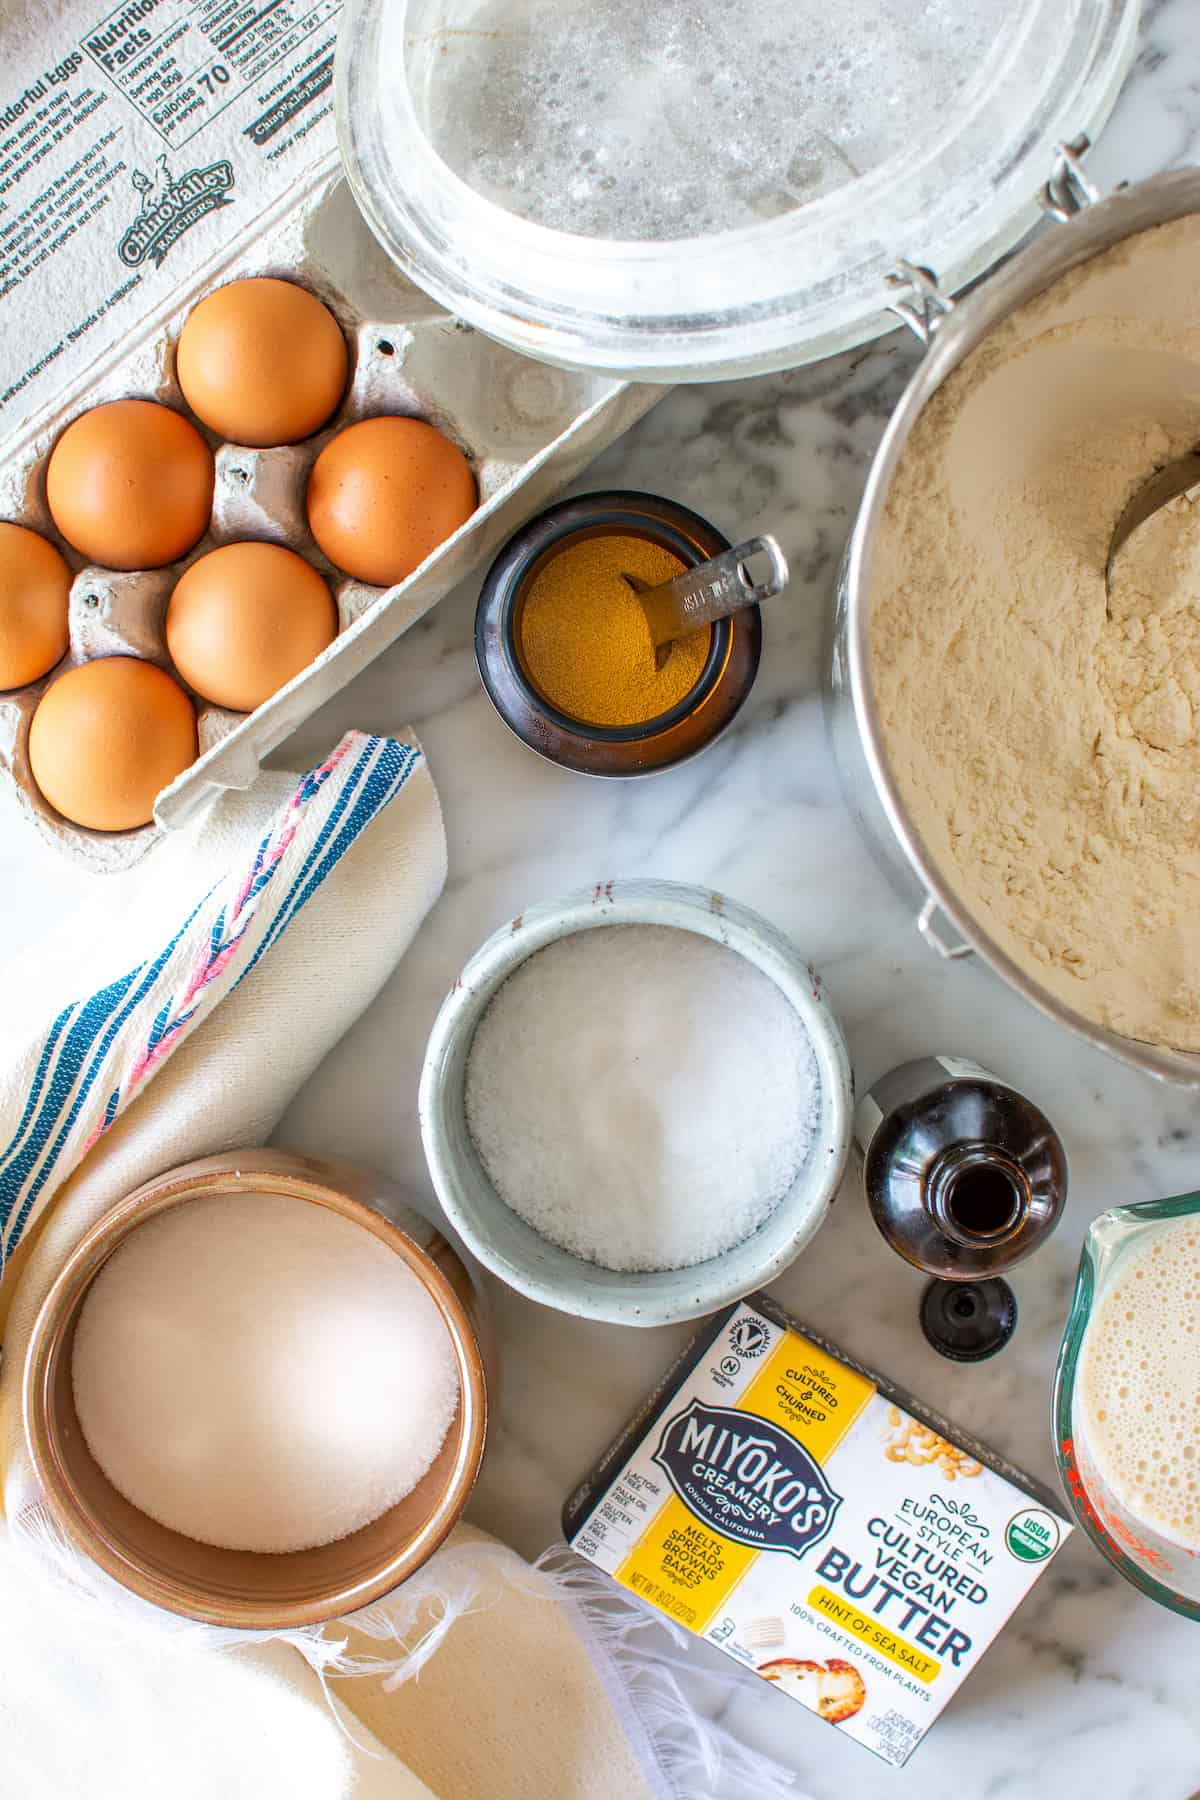 The ingredients to make concha rolls sitting on a marble table. Brown eggs in a carton, flour, yeast, salt, sugar, vanilla extract, and butter